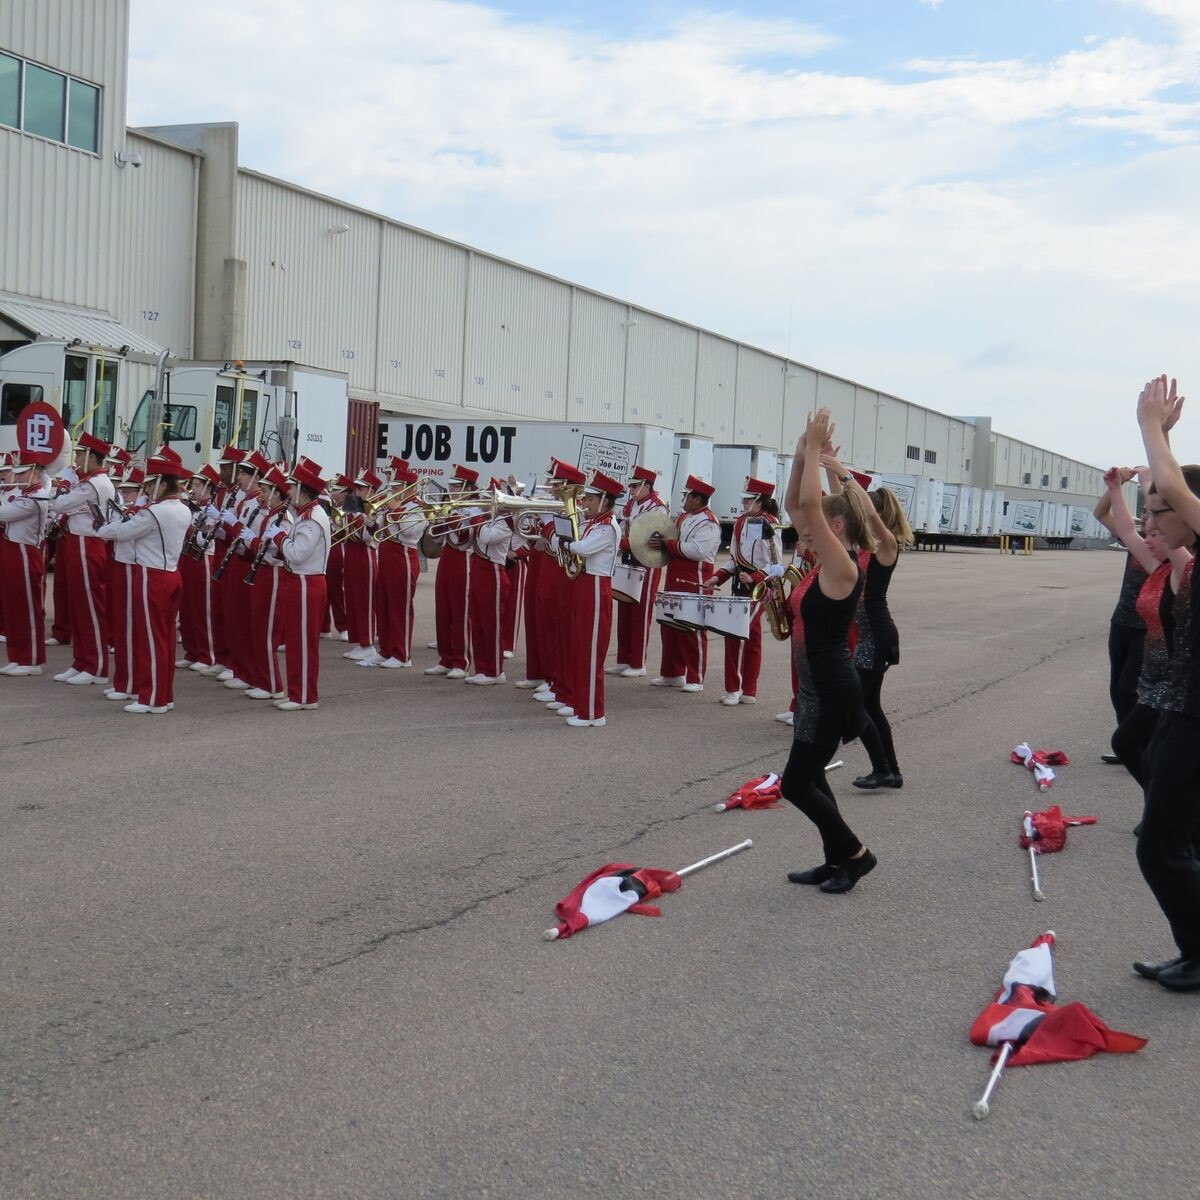 EPHS marching band plays and cheerleaders perform